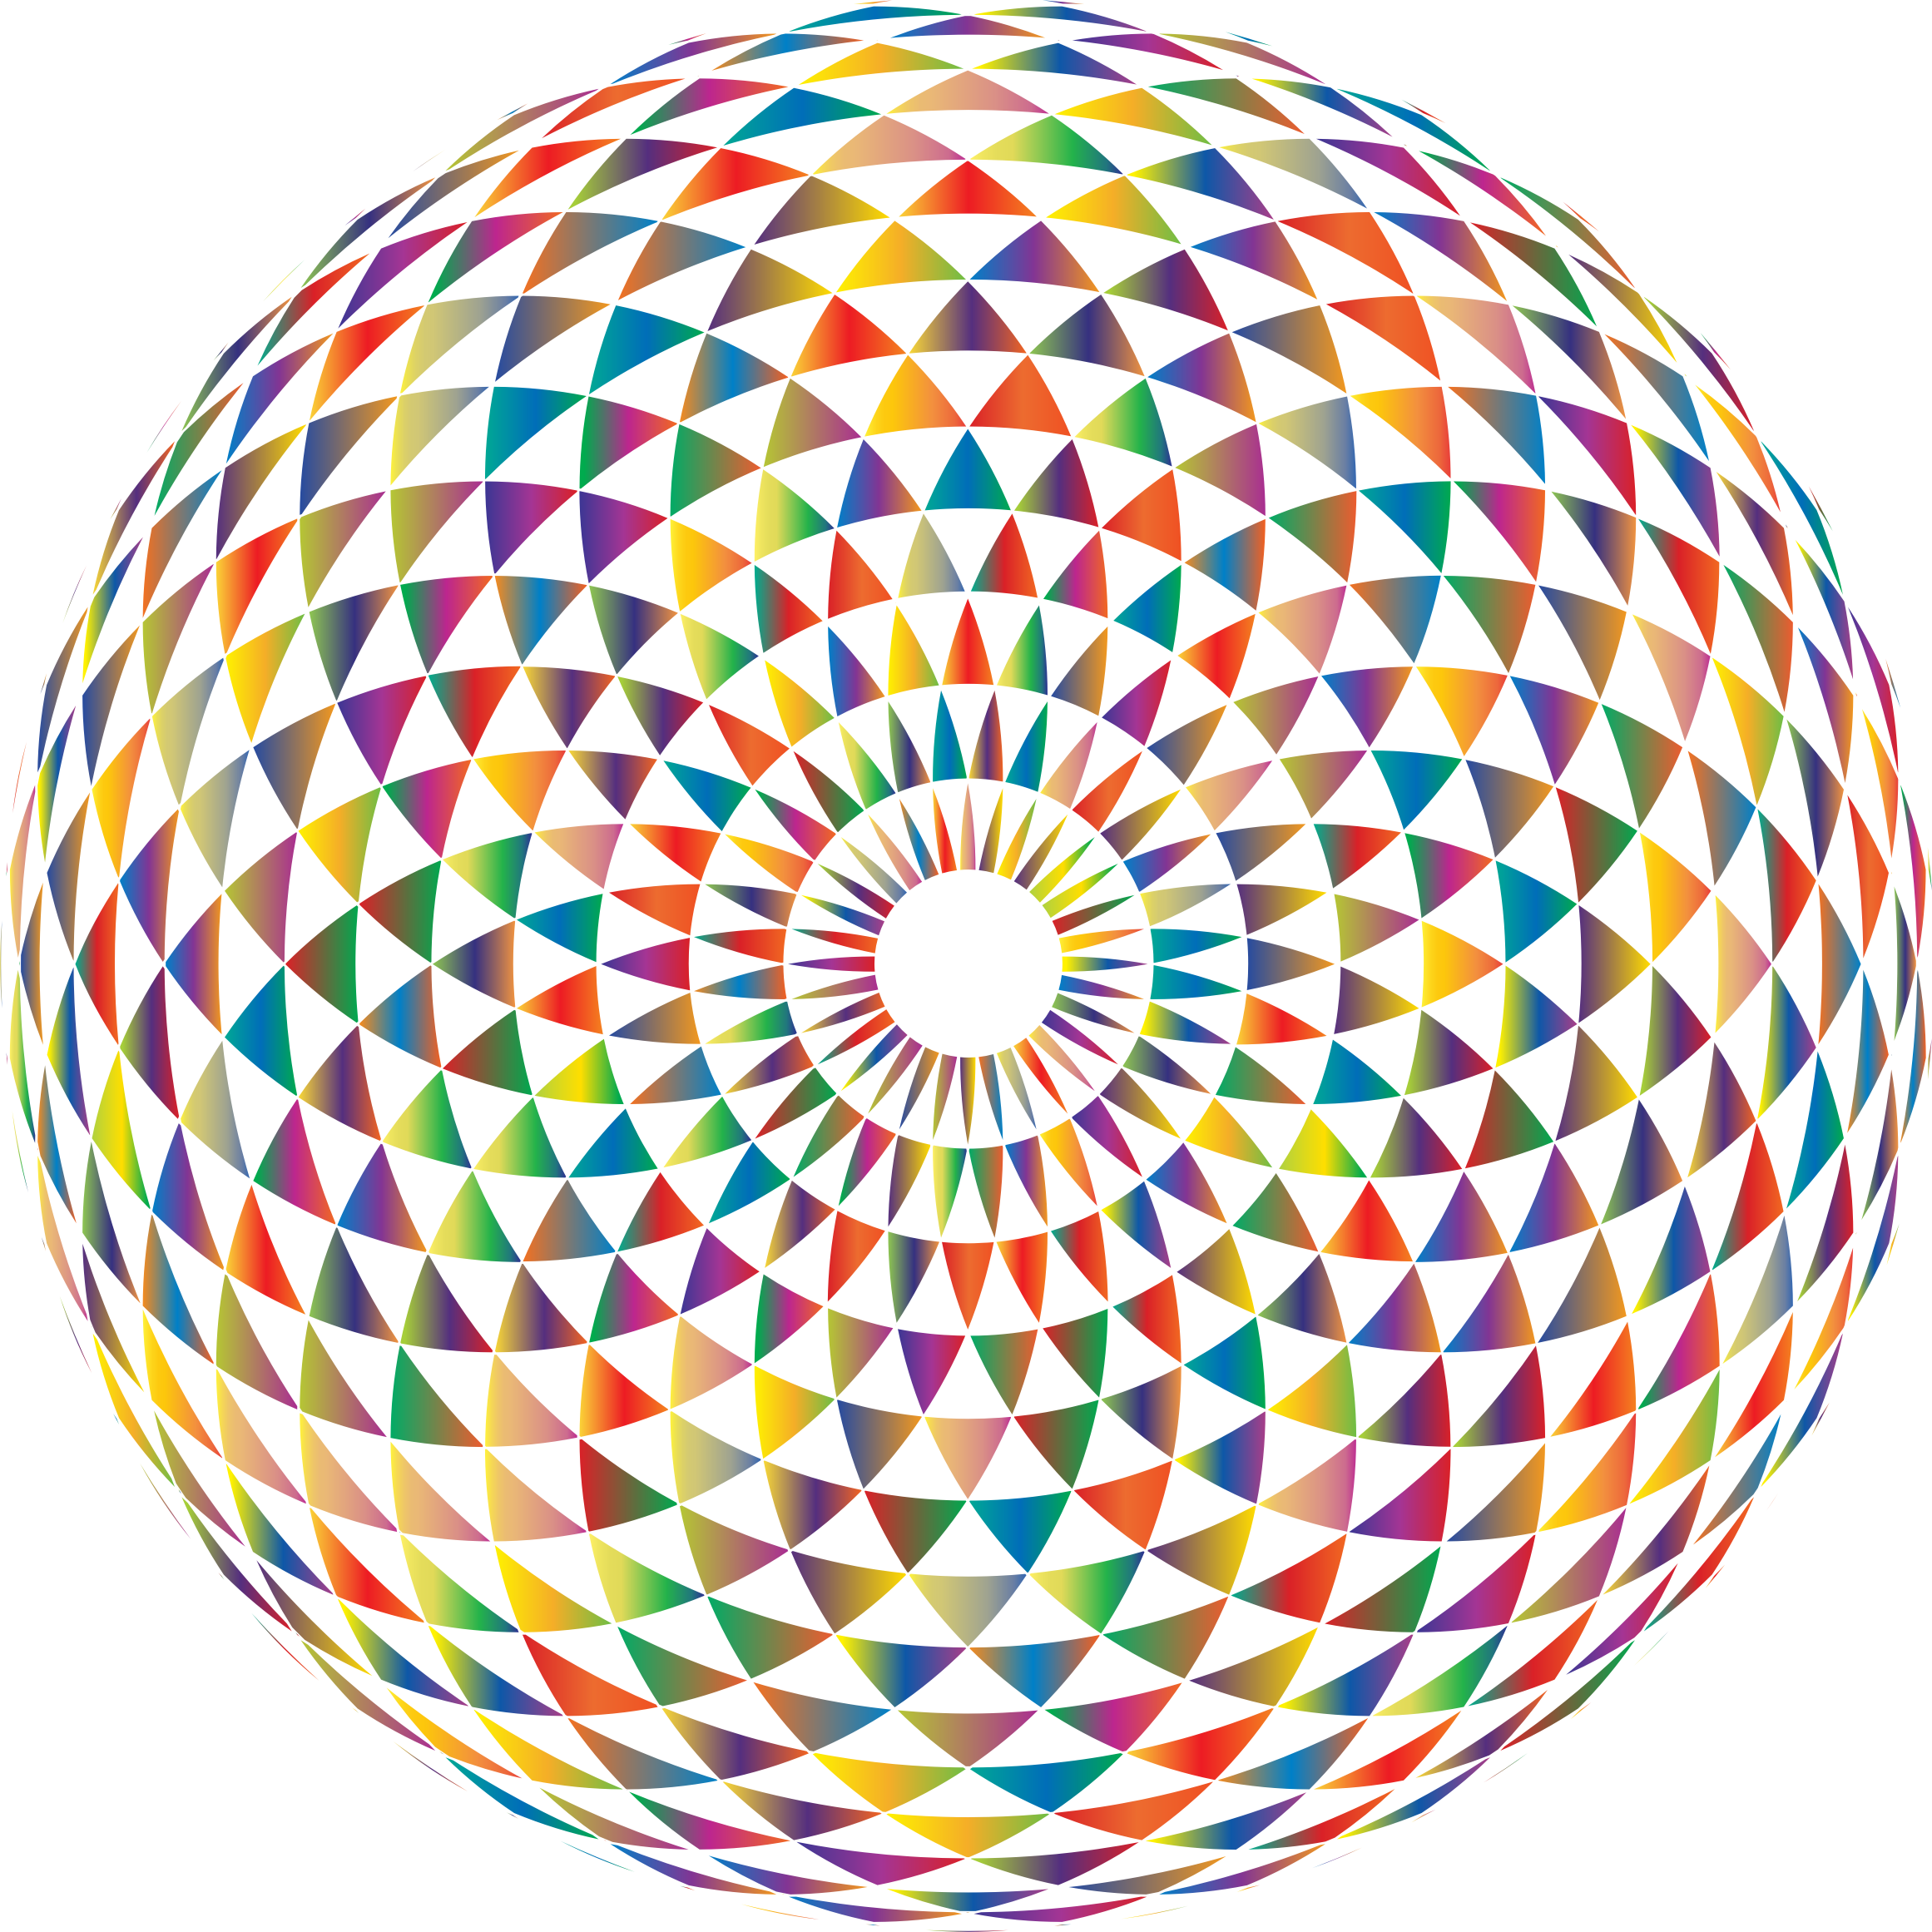 Colorful Toroid Mandala 4 by GDJ